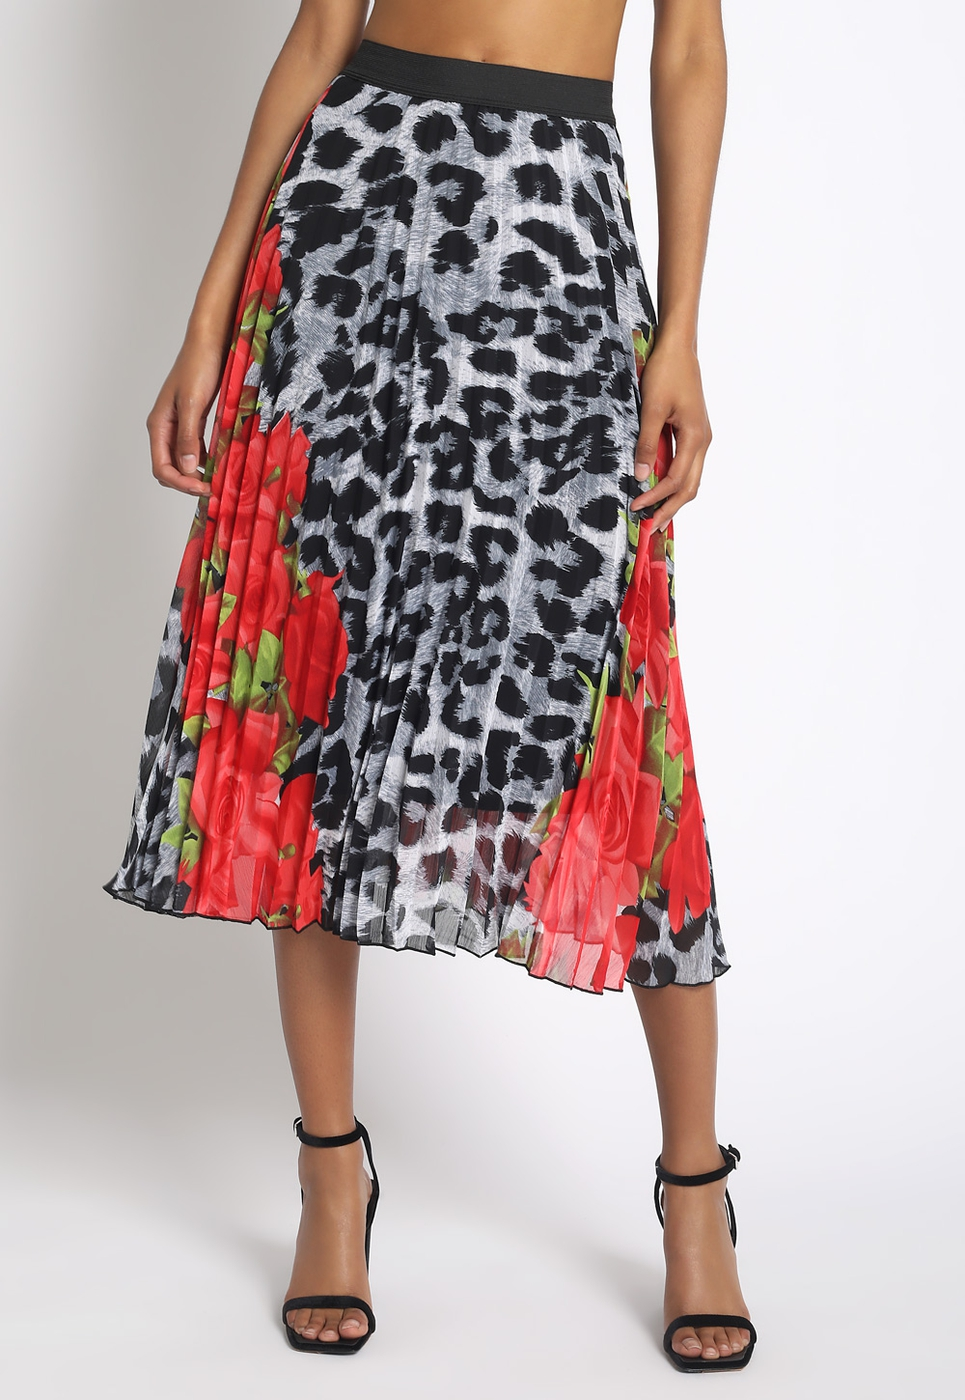 FLORAL LEOPARD PLEATED MIDI SKIRT - orangeshine.com